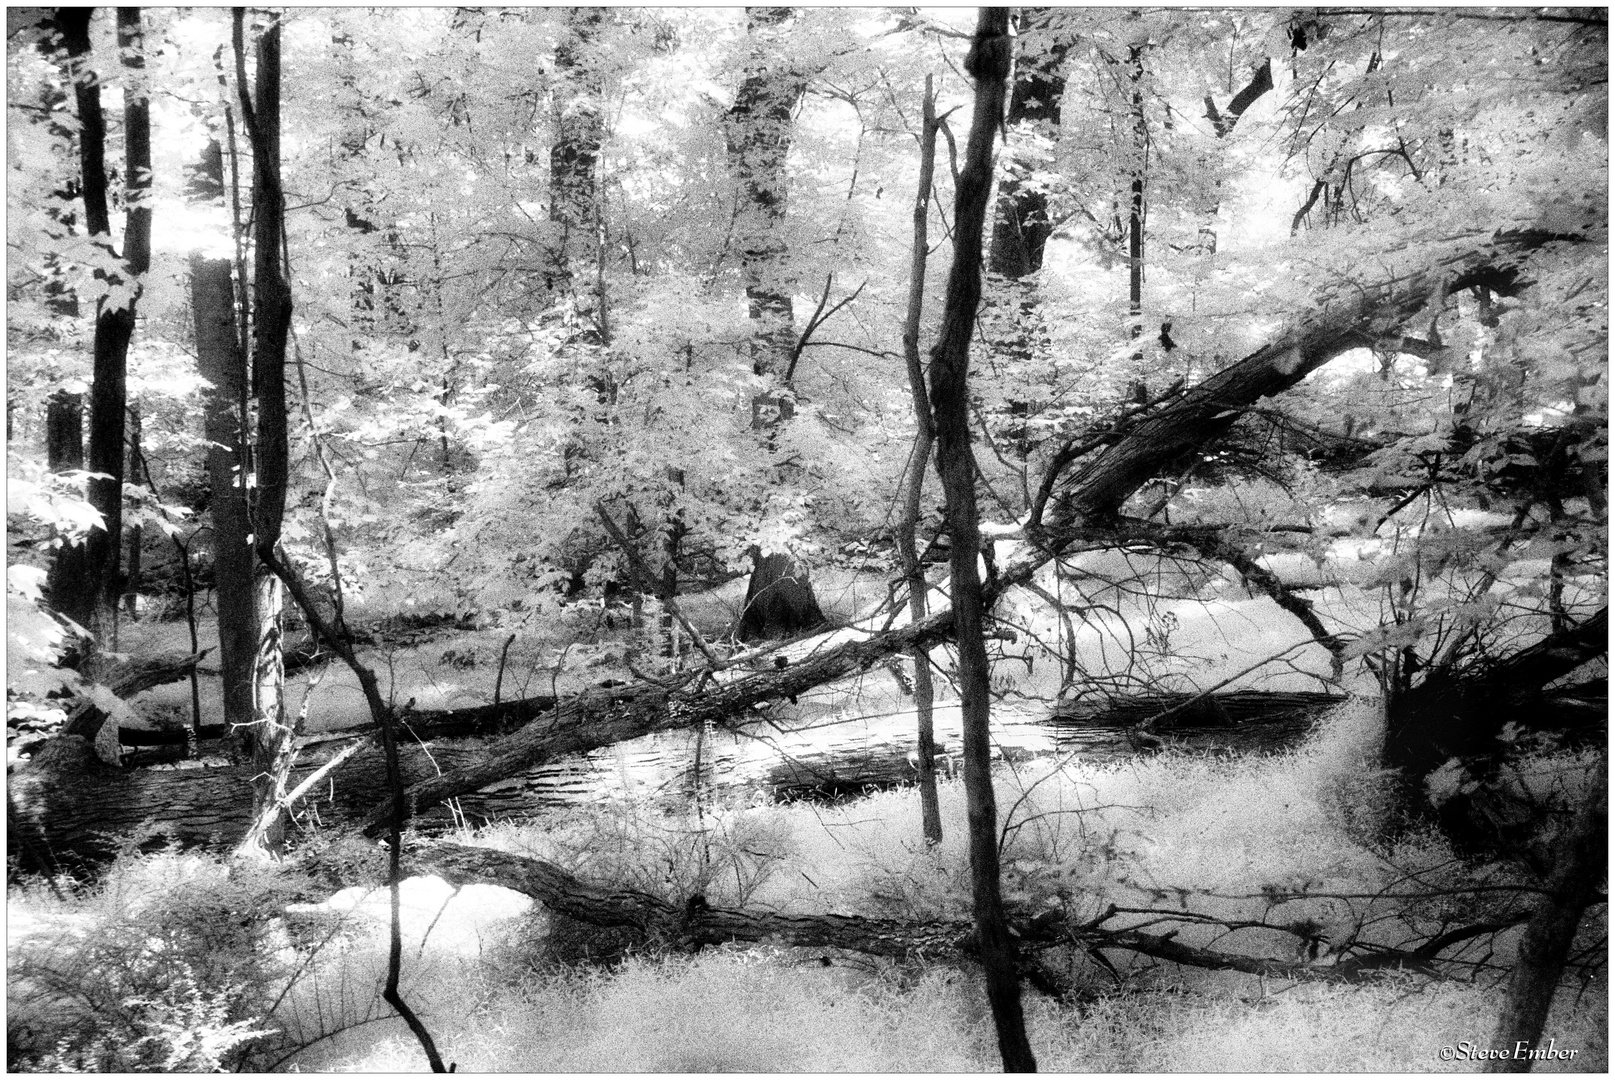 Woodland Calm - No. 7 (Infrared)